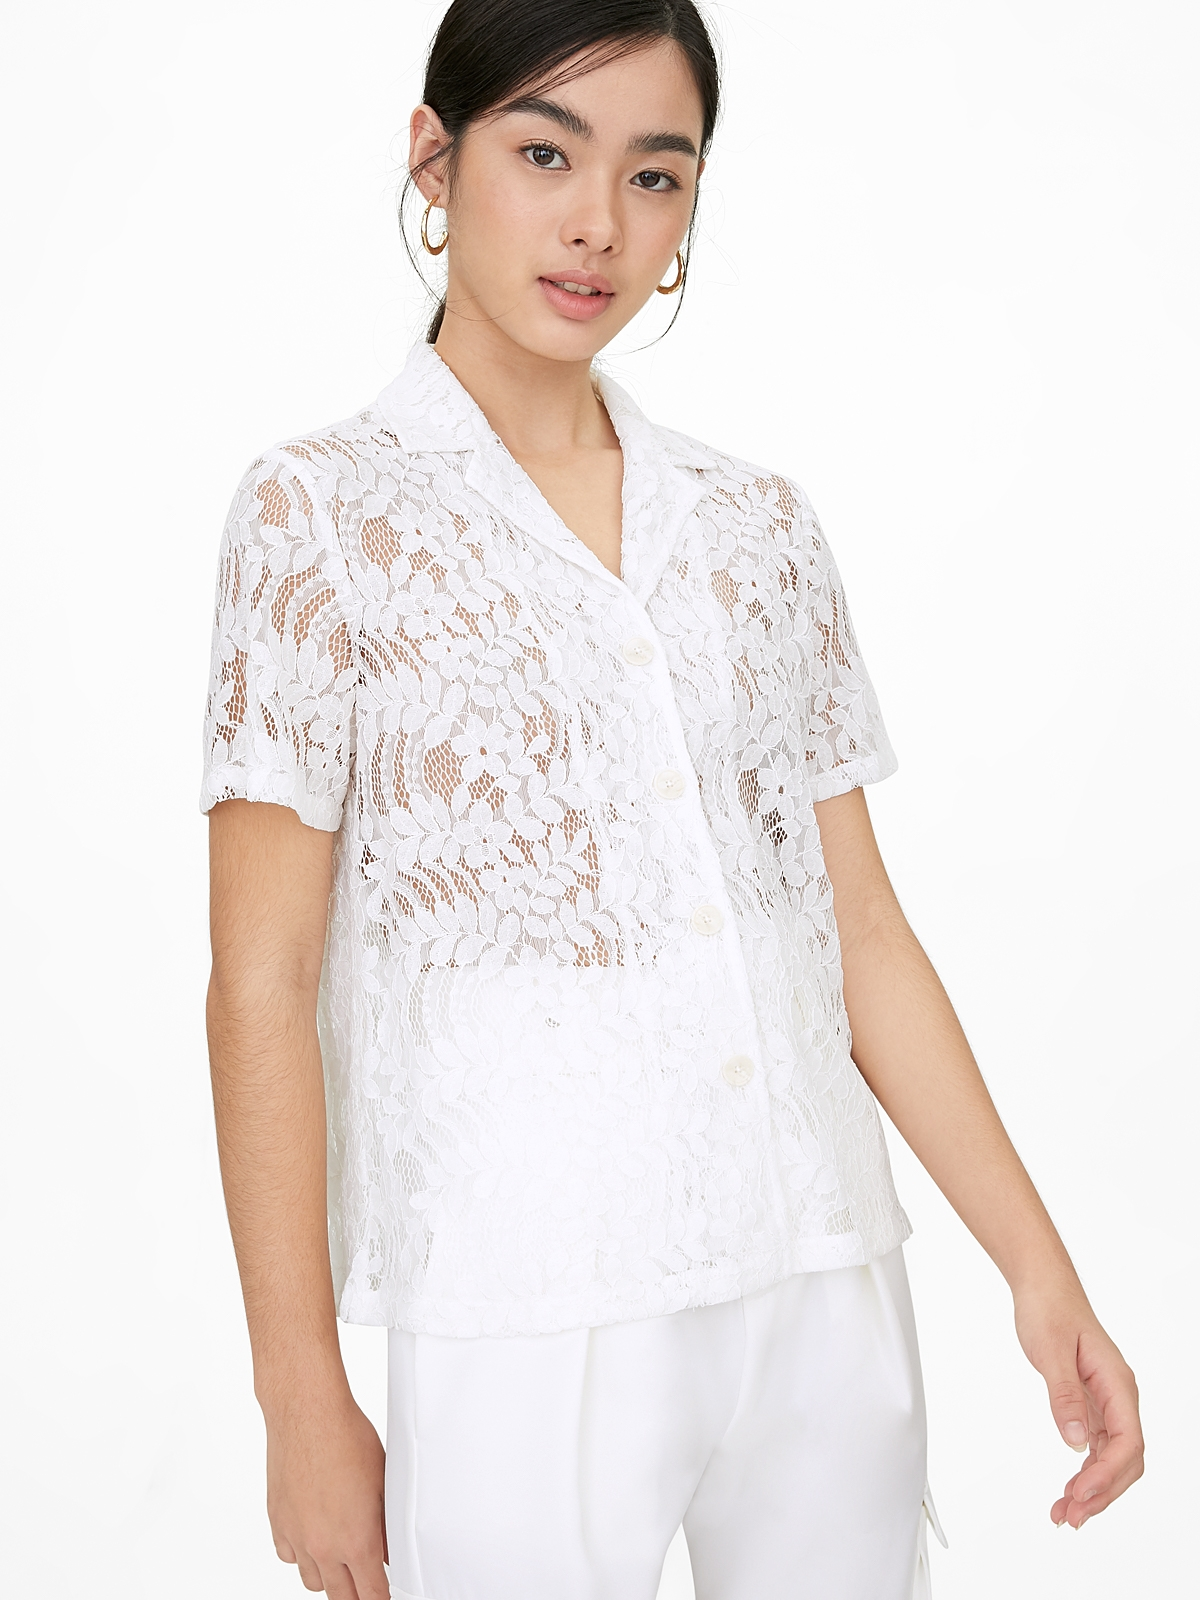 Lace Button Up Short Sleeve Shirt White